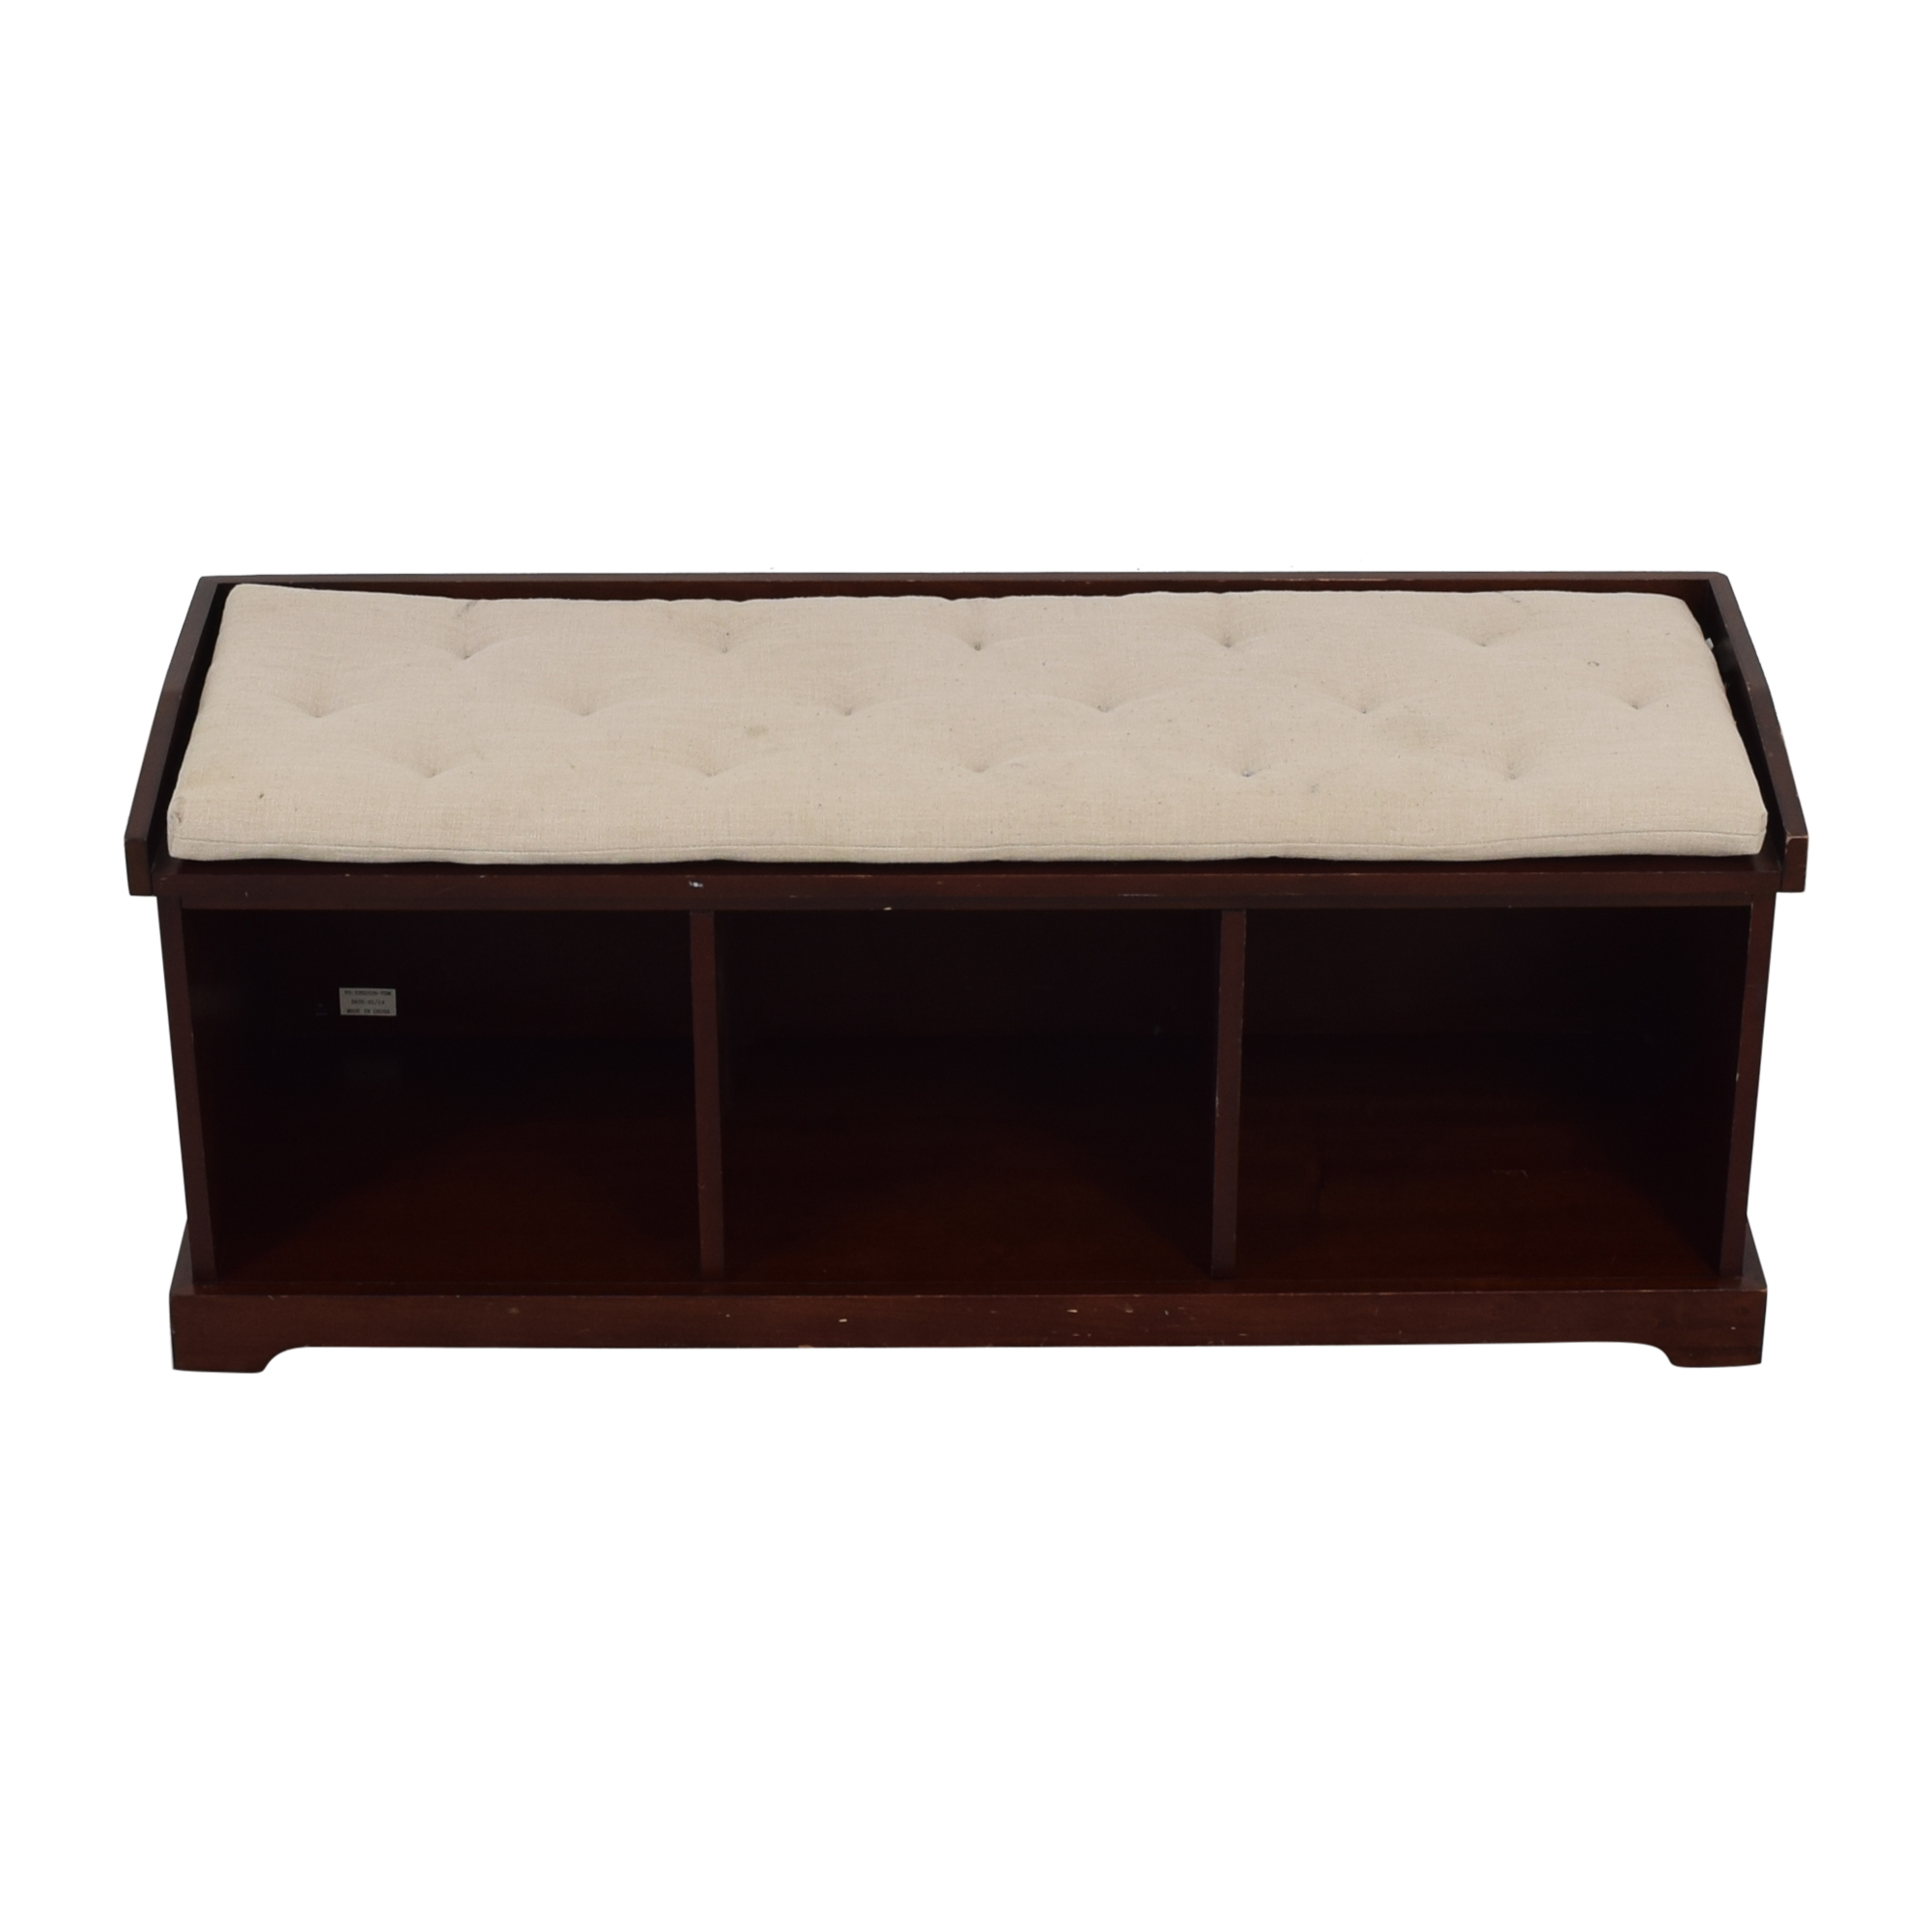 buy Pottery Barn Pottery Barn Samantha Bench with Cushion online